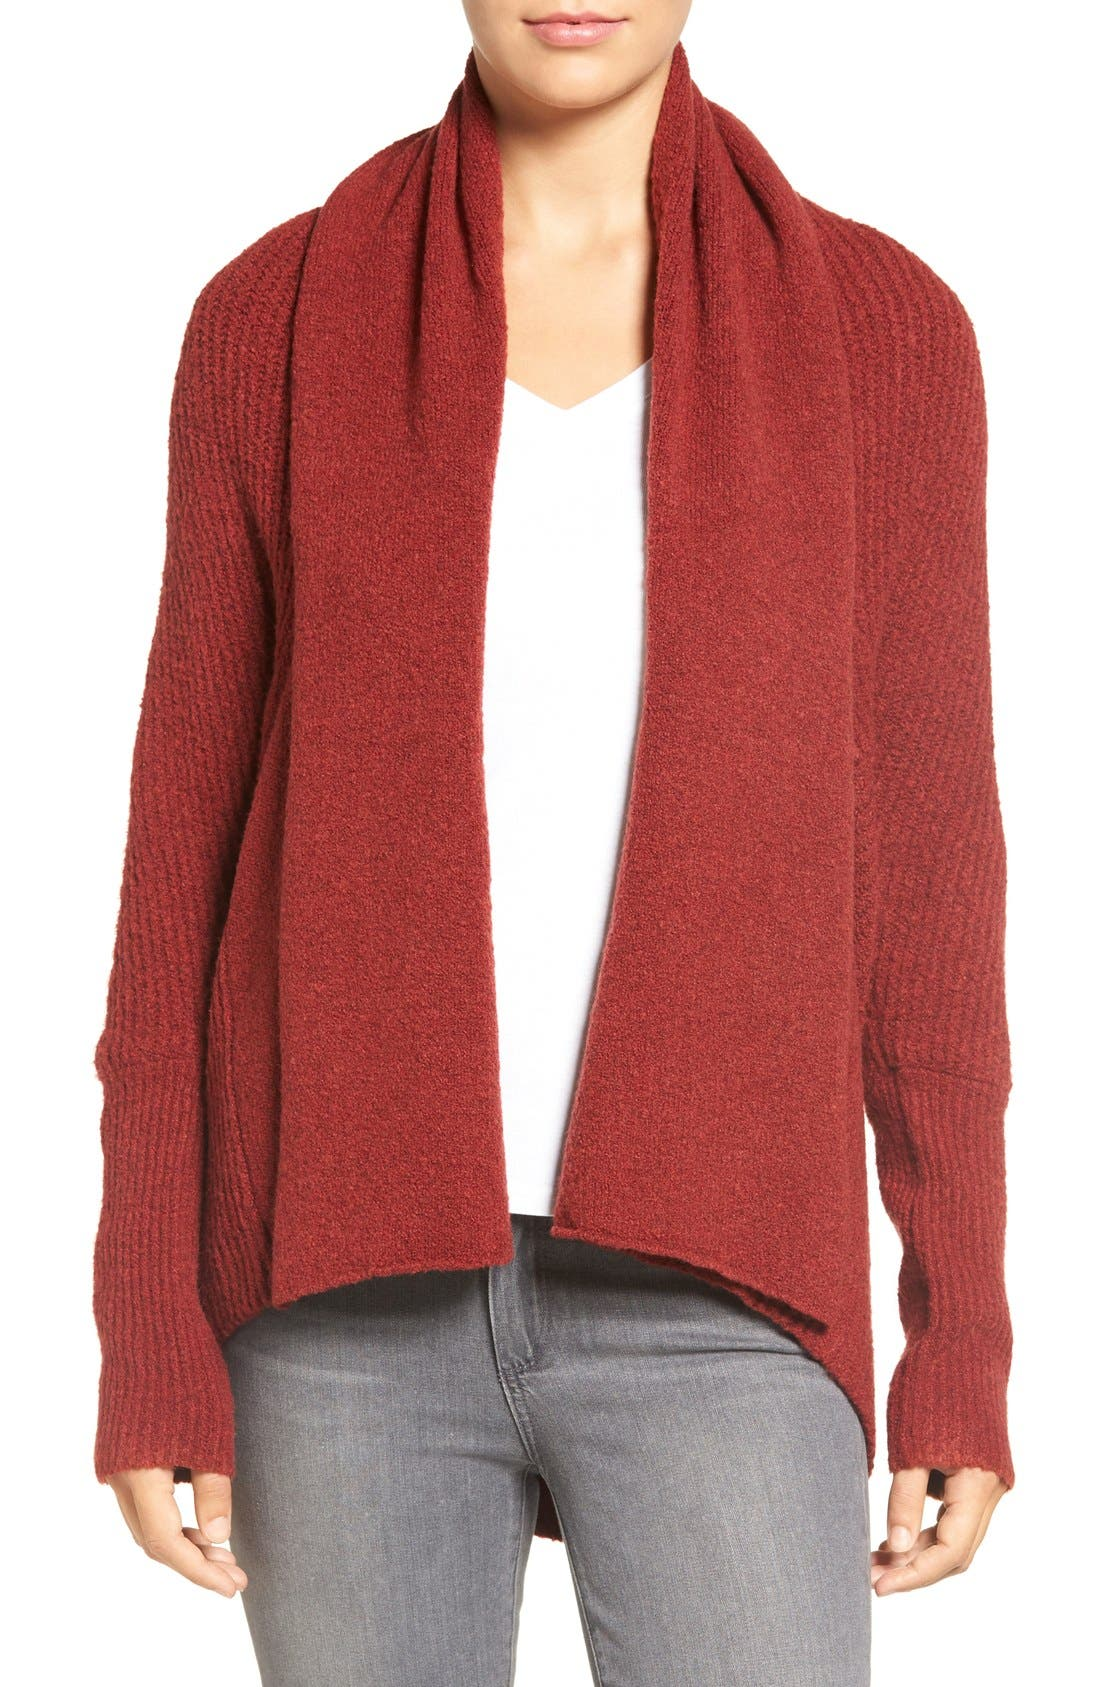 Alternate Image 1 Selected - Chelsea28 Dolman Sleeve Open Front Cardigan